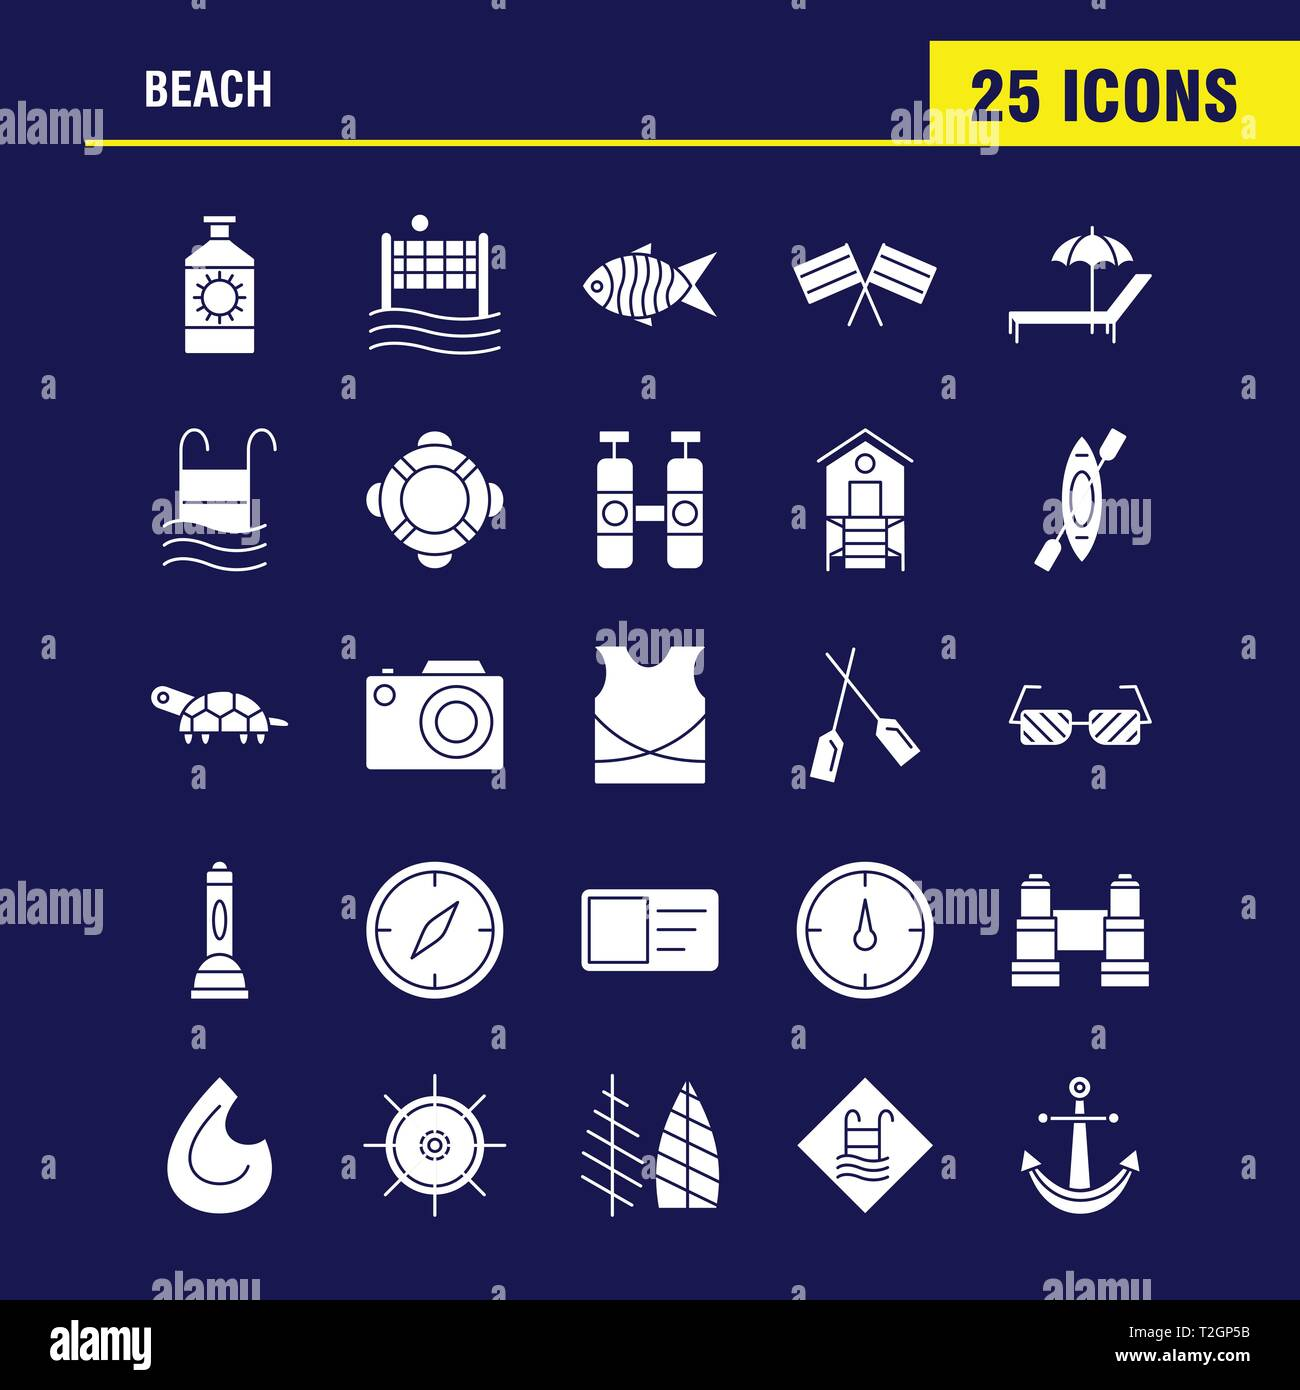 Beach Solid Glyph Icon for Web, Print and Mobile UX/UI Kit. Such as: Protein, Bottle, Drink, Sport, Beach, Net, Sports, Volley, Pictogram Pack. - Vect - Stock Vector